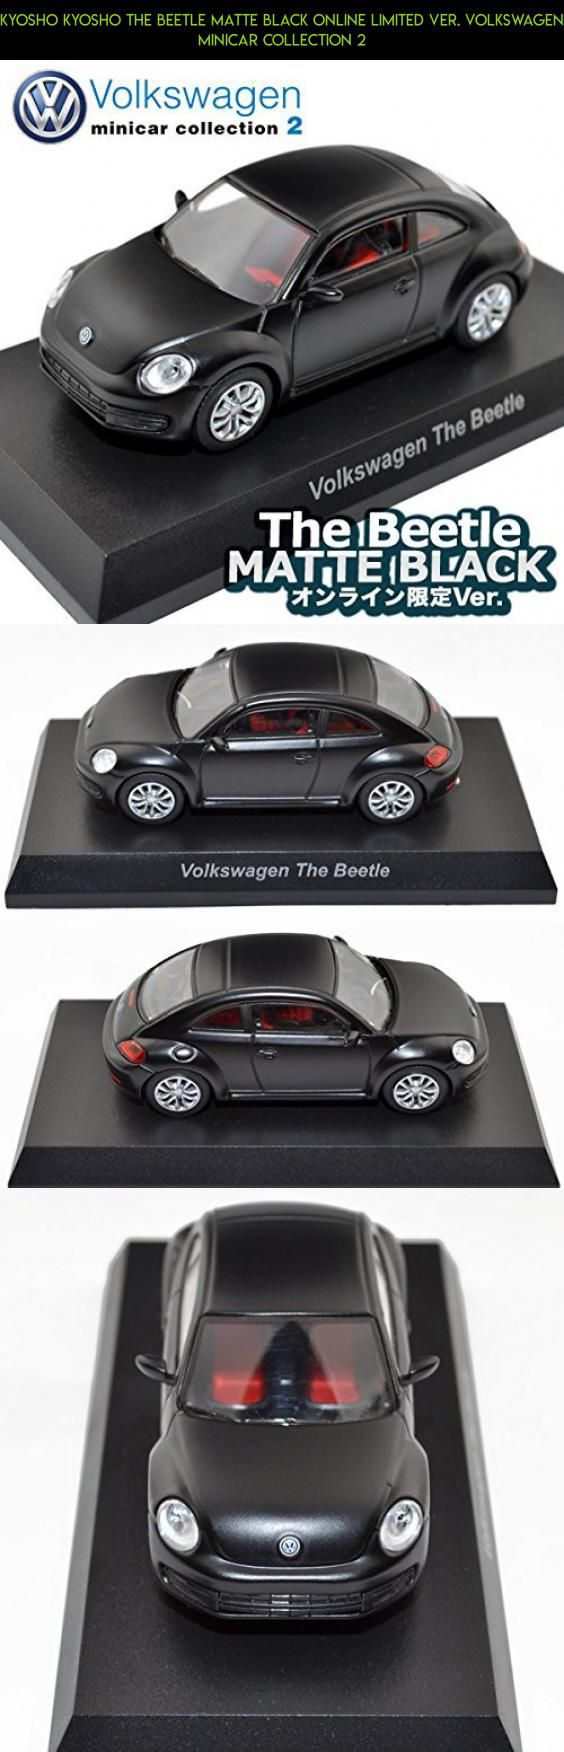 Kyosho kyosho the beetle matte black online limited ver volkswagen minicar collection 2 kyosho